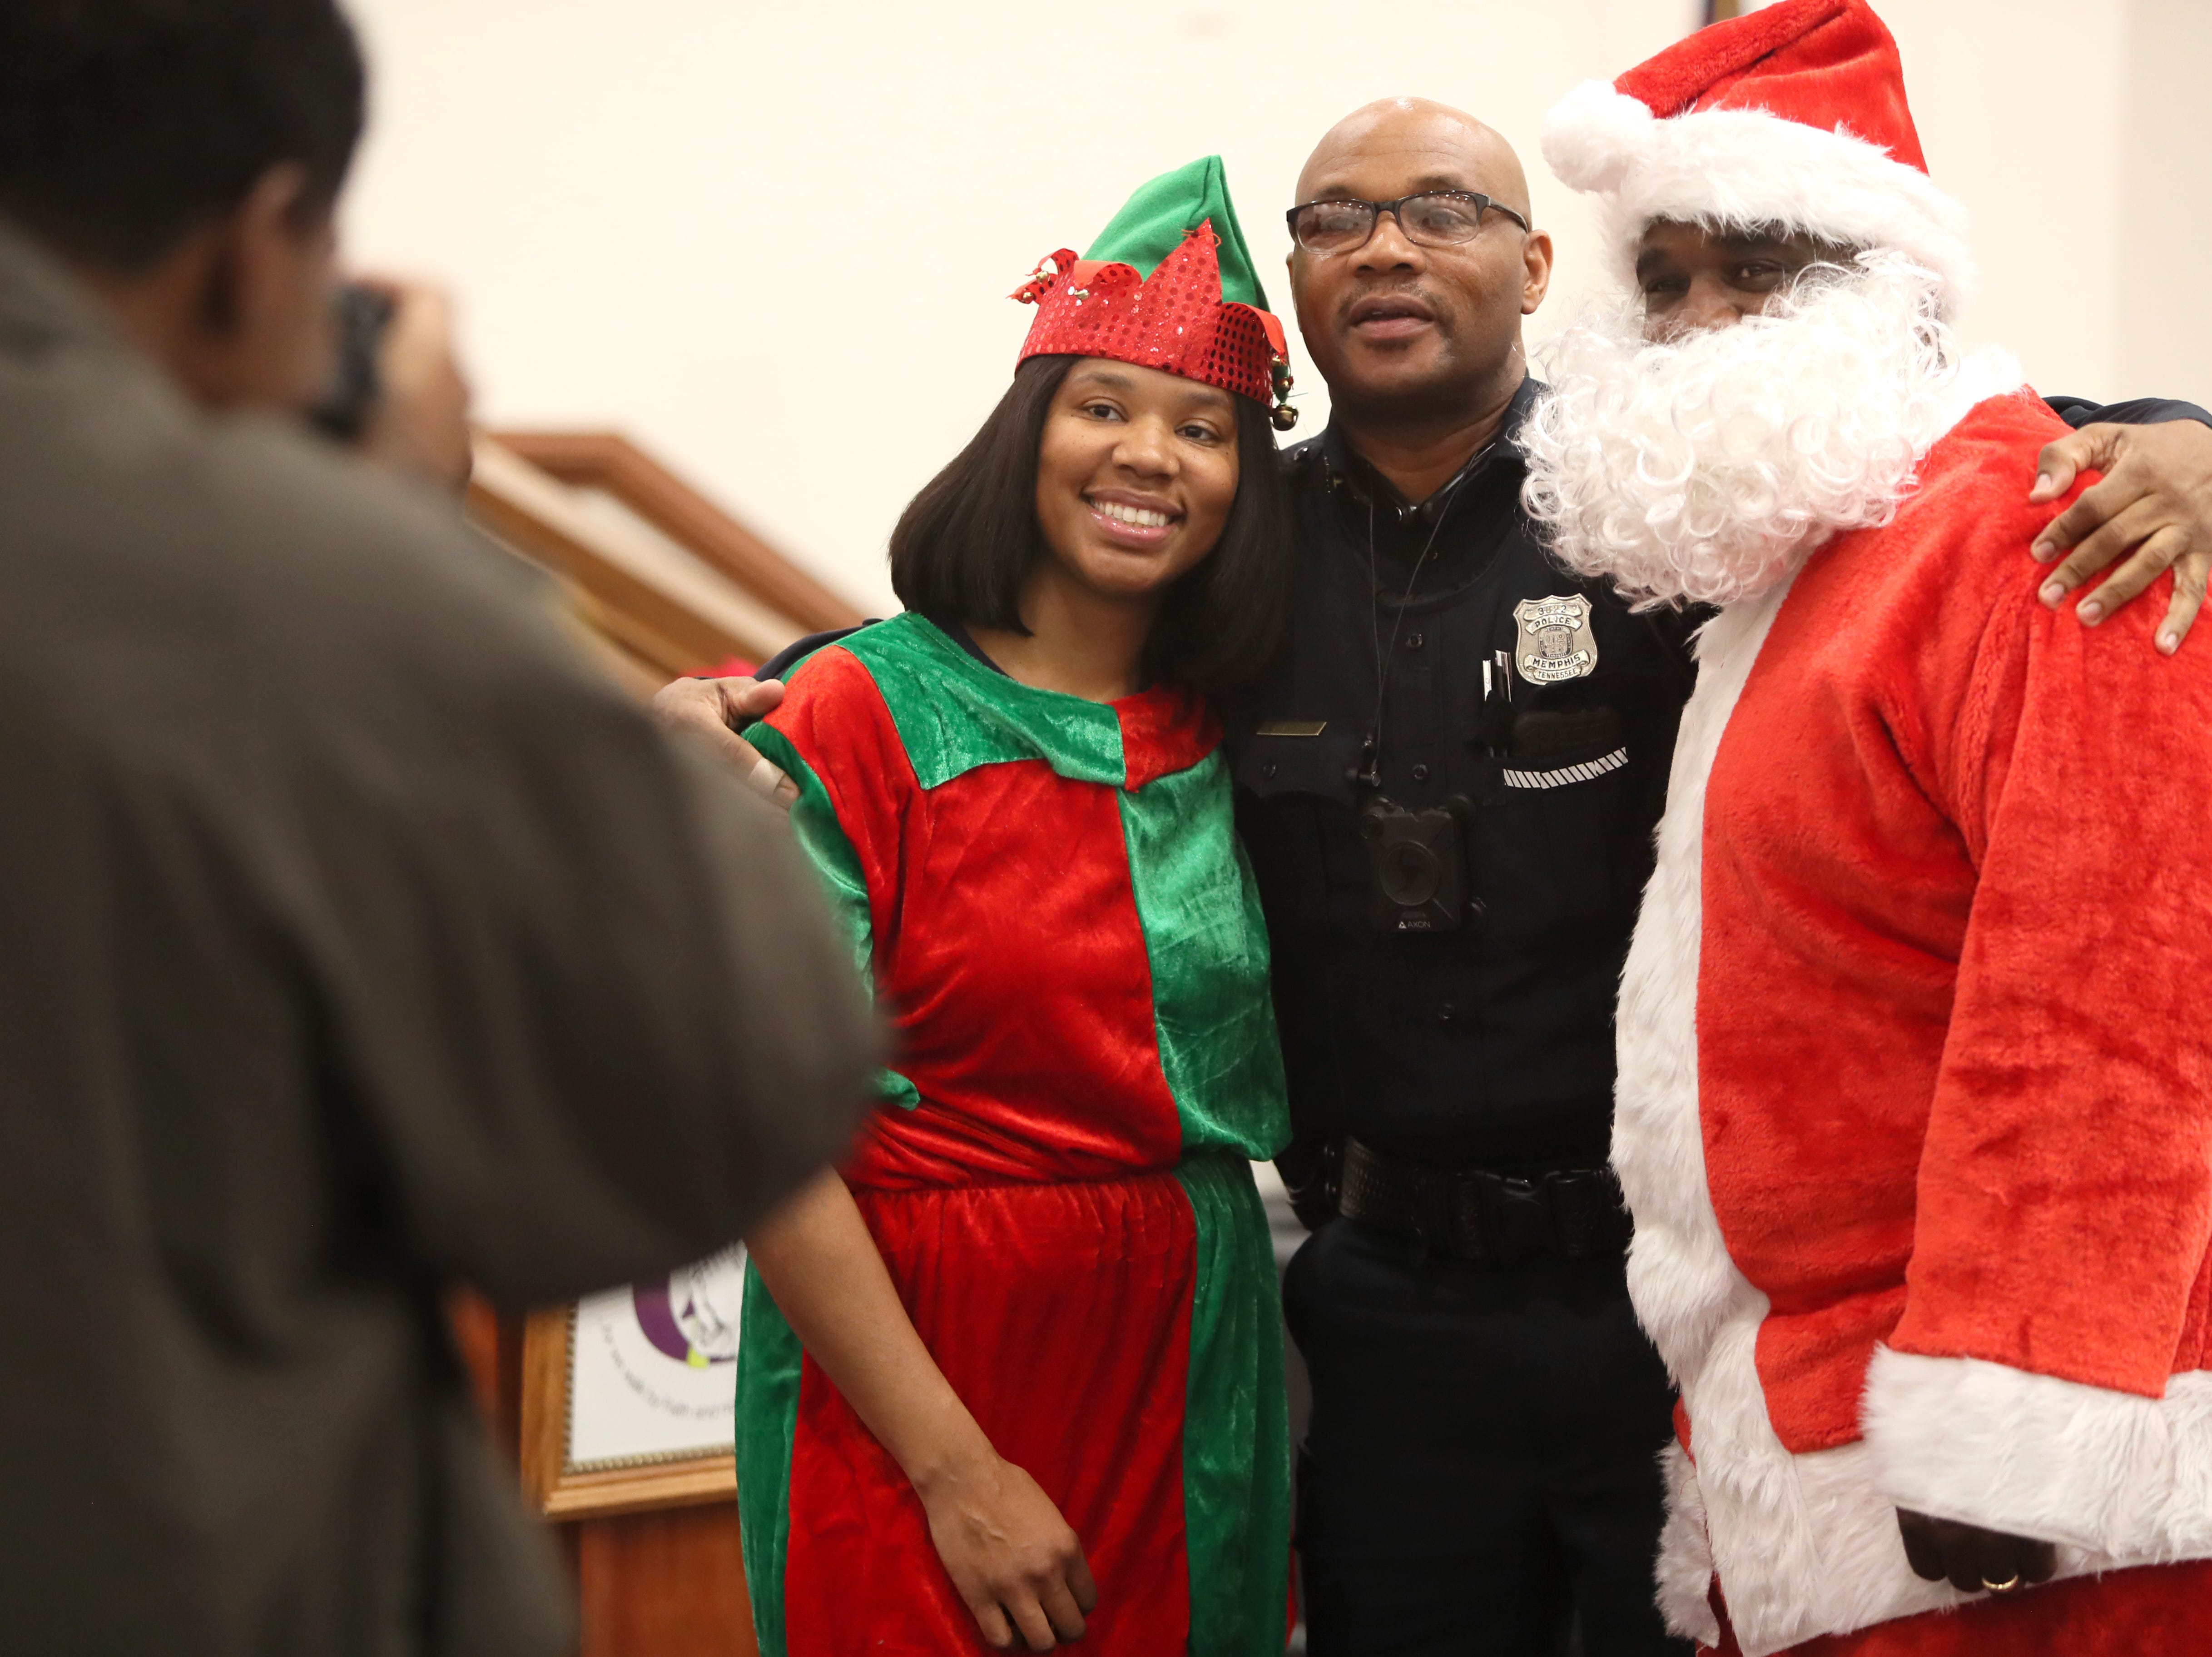 The Memphis Police Department's Community Outreach Program brings Christmas spirit with gifts and food to families at Grace Missionary Baptist Church on Thursday, Dec. 20, 2018.